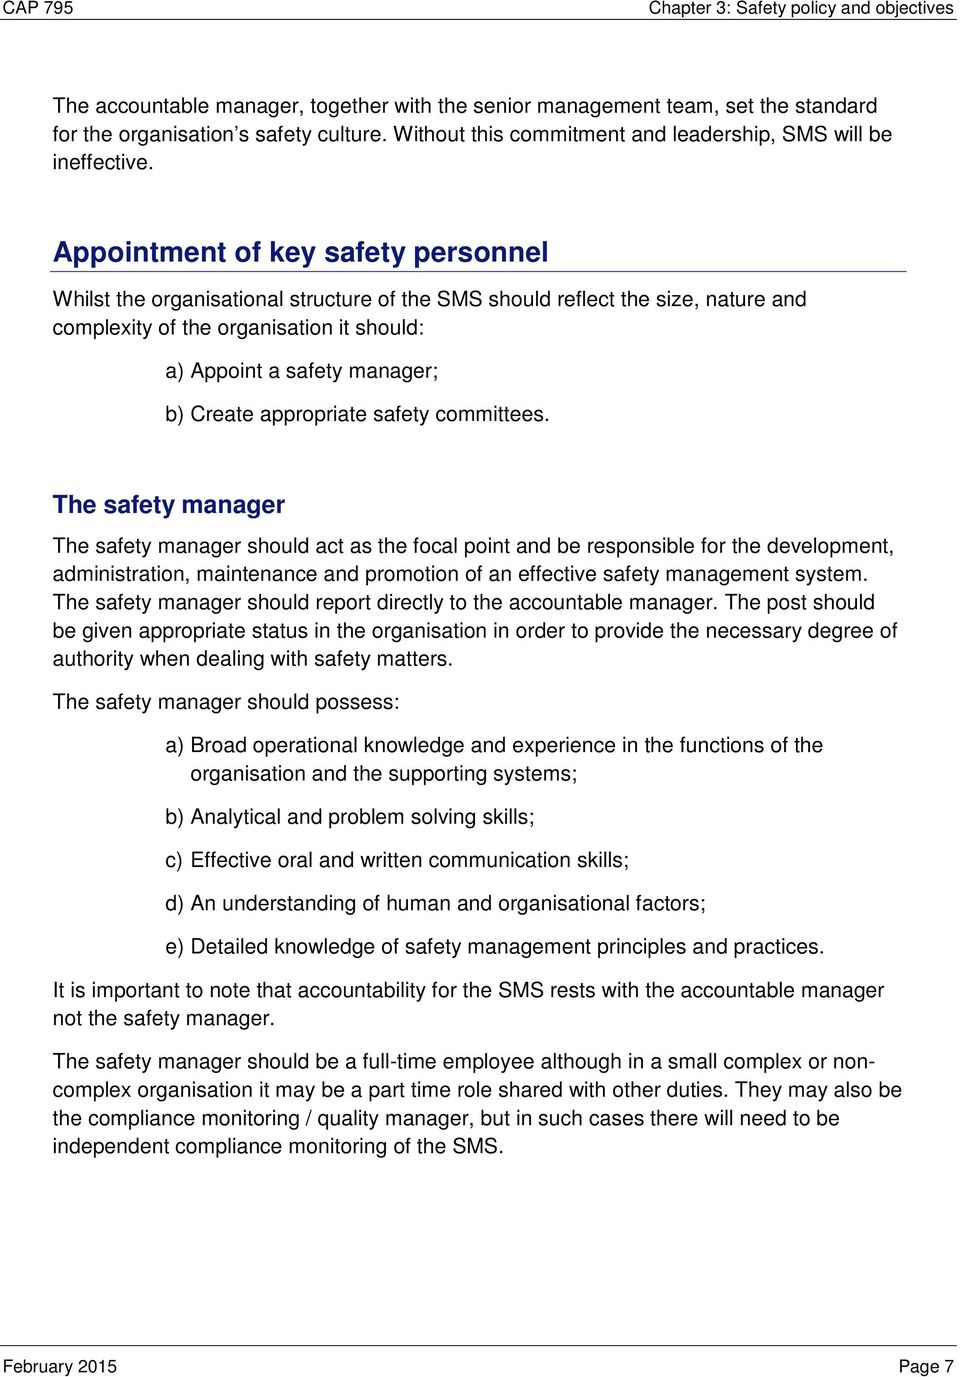 Appointment of key safety personnel Whilst the organisational structure of the SMS should reflect the size, nature and complexity of the organisation it should: a) Appoint a safety manager; b) Create